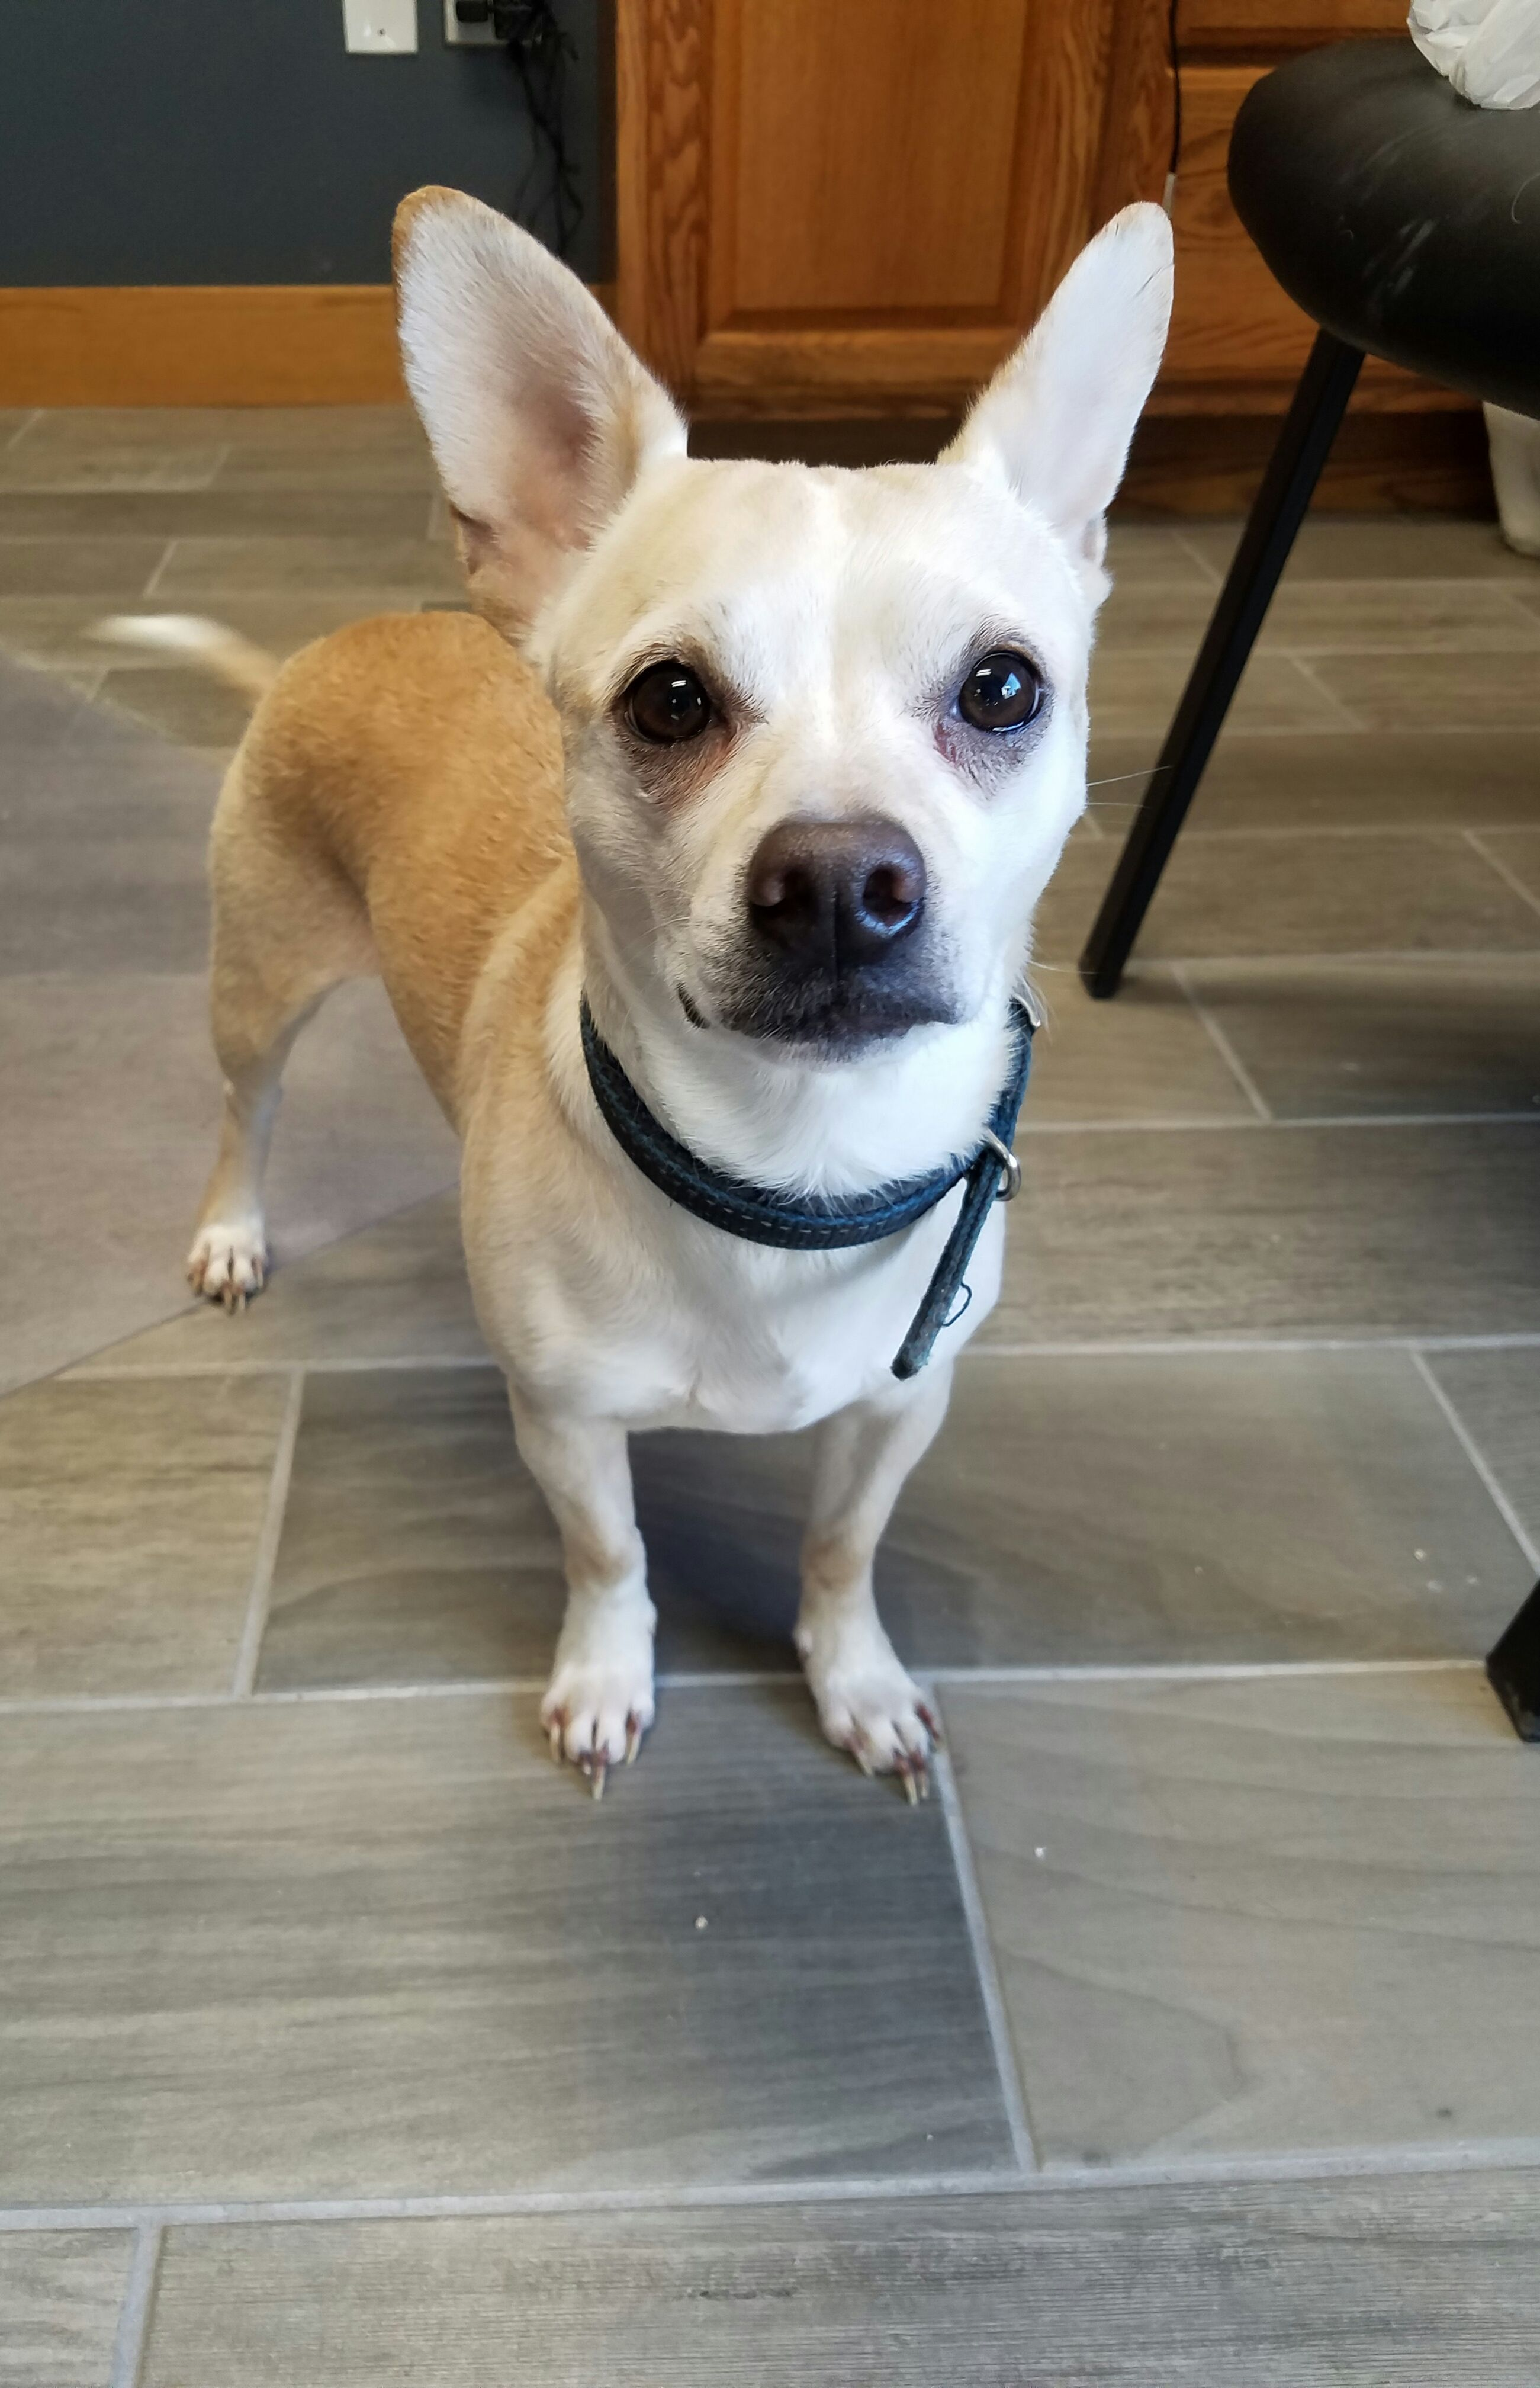 Chihuahua dog for Adoption in Carroll, IA. ADN-406401 on PuppyFinder.com Gender: Male. Age: Adult